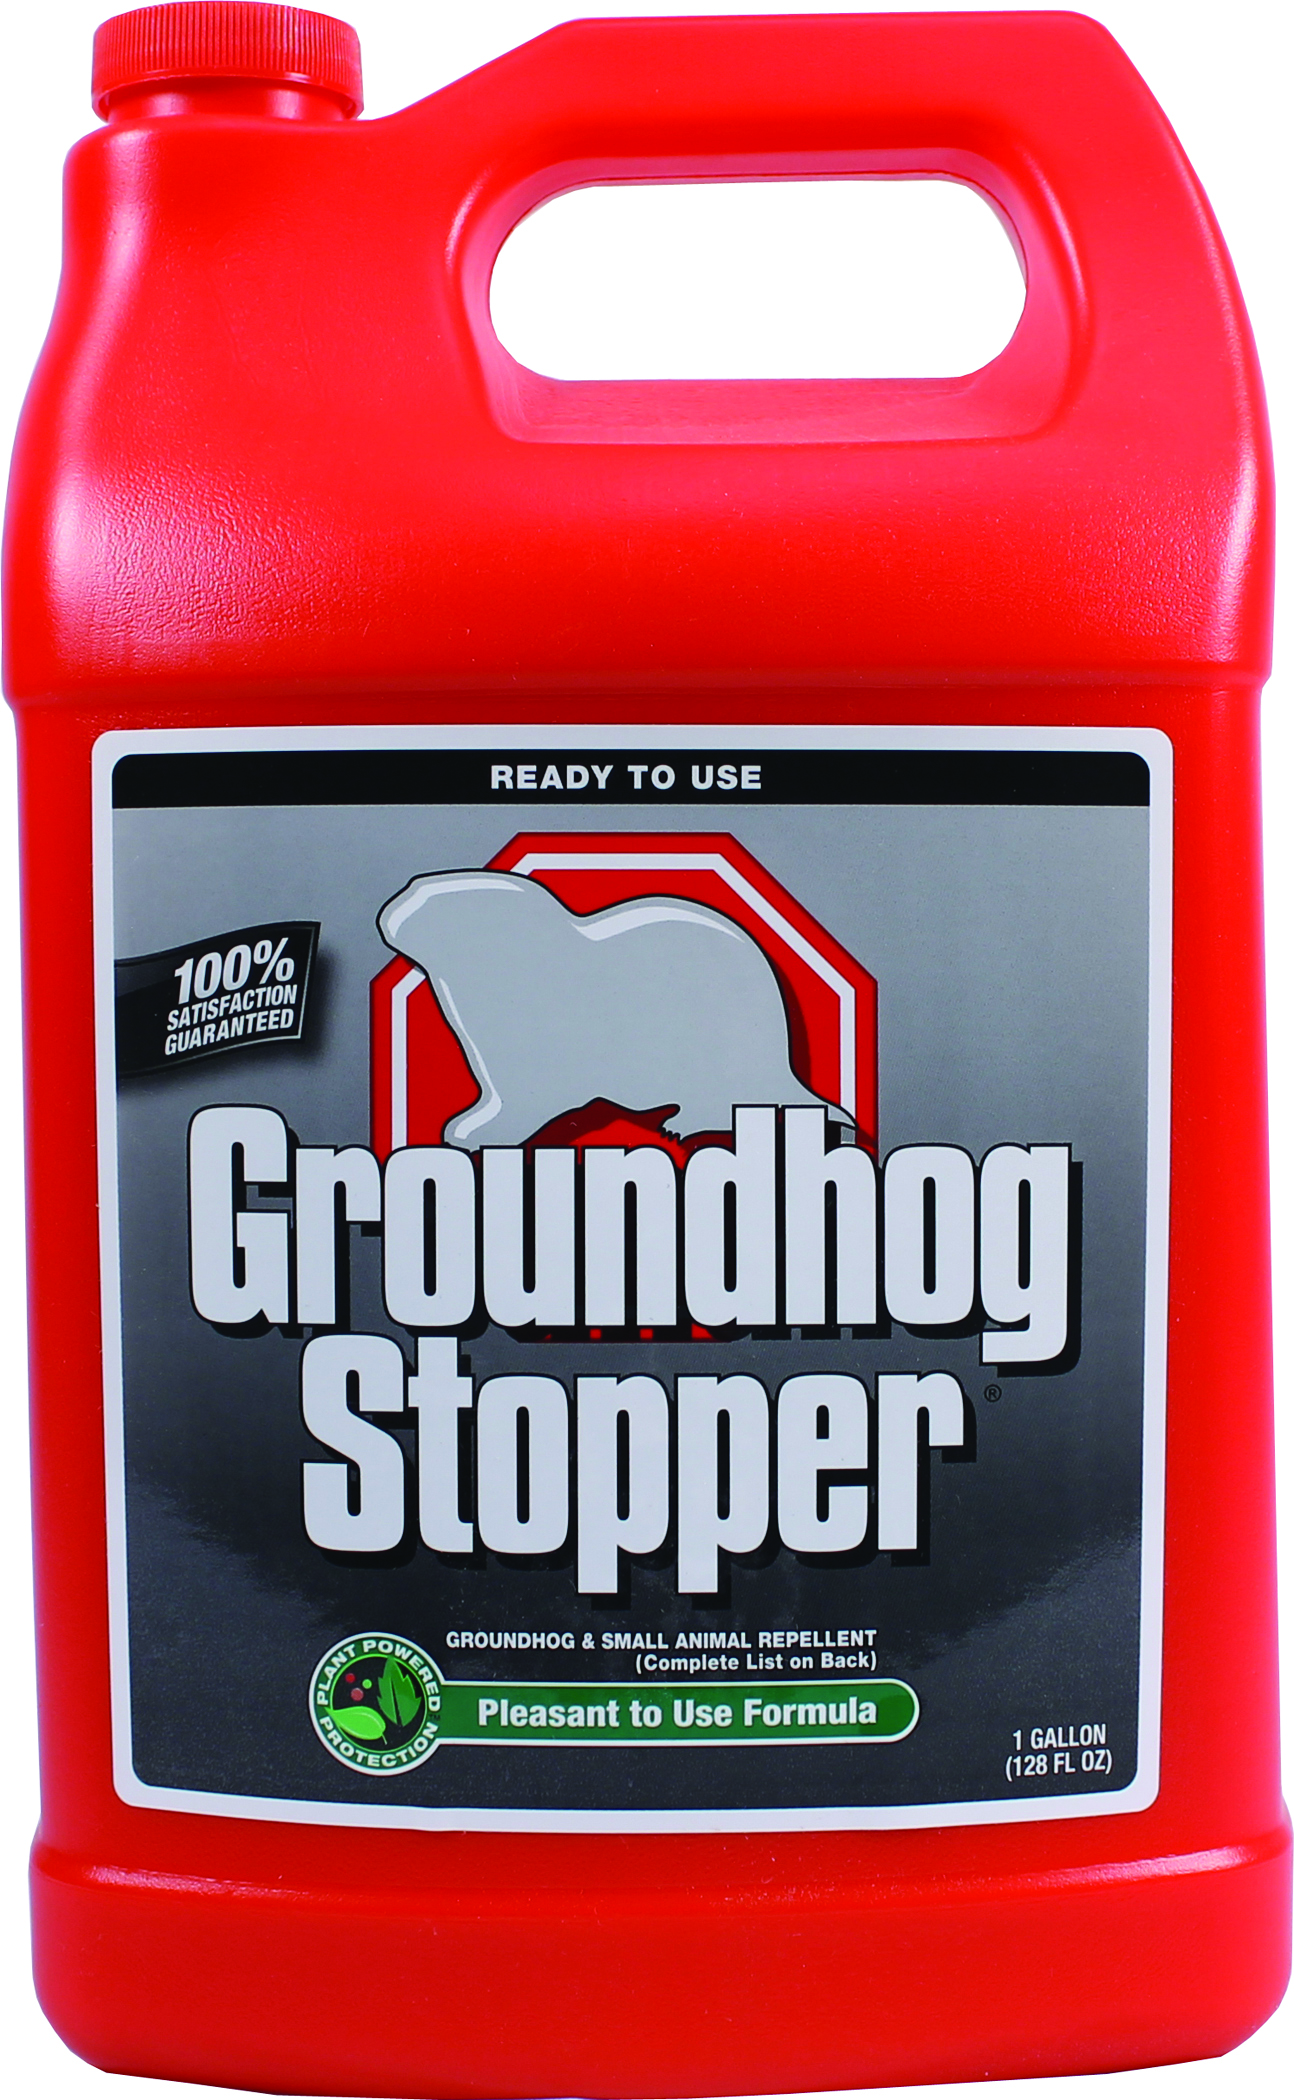 MESSINA Groundhog Stopper Ready To Use Refill